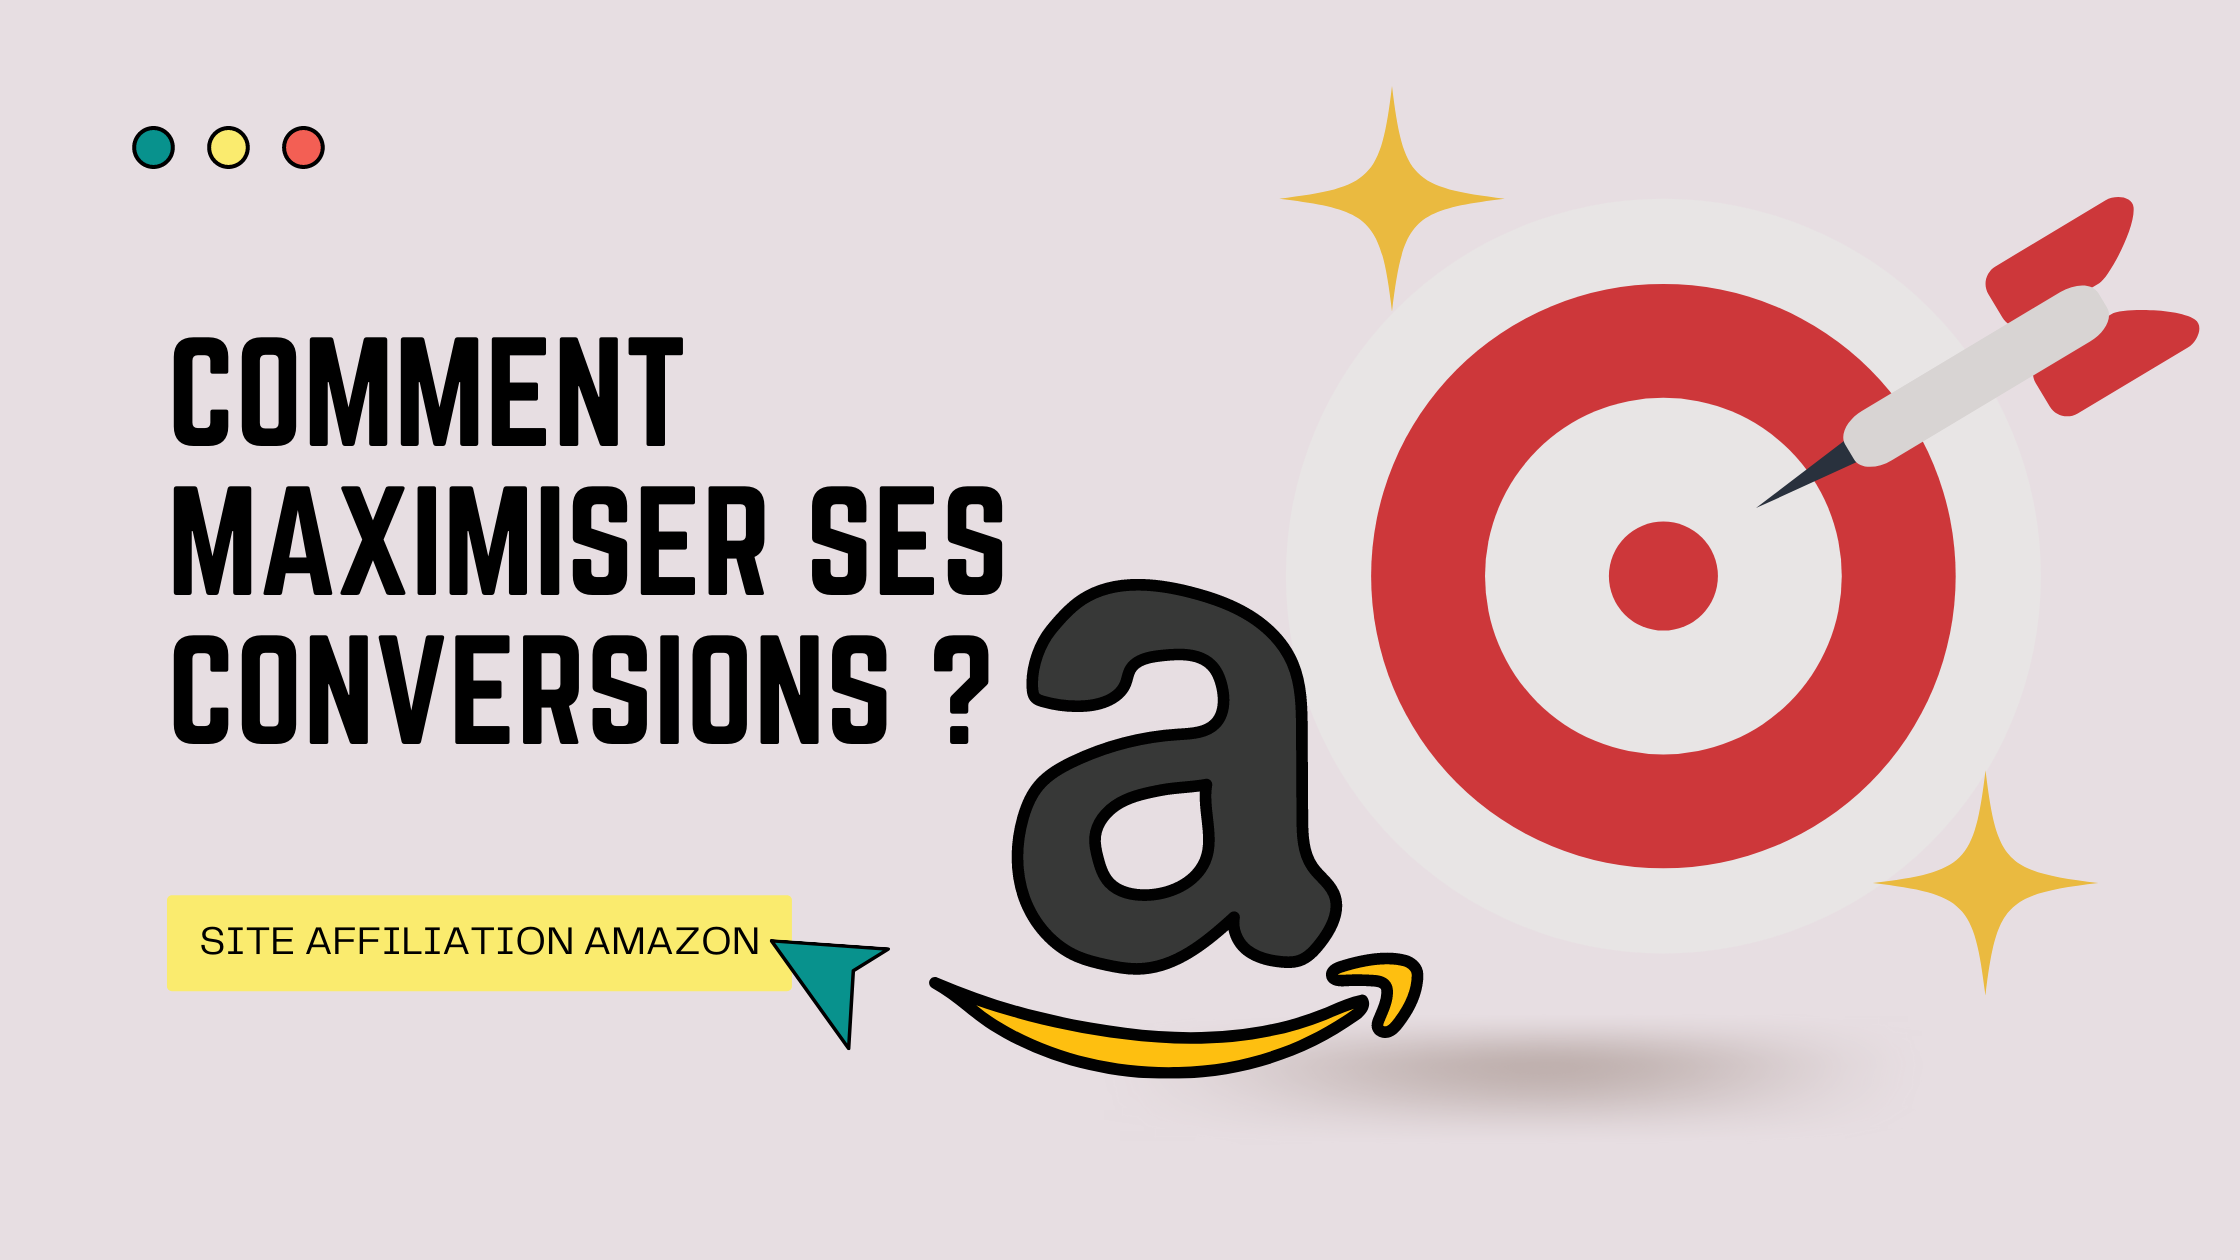 You are currently viewing Site Affiliation Amazon: Comment maximiser ses conversions ?